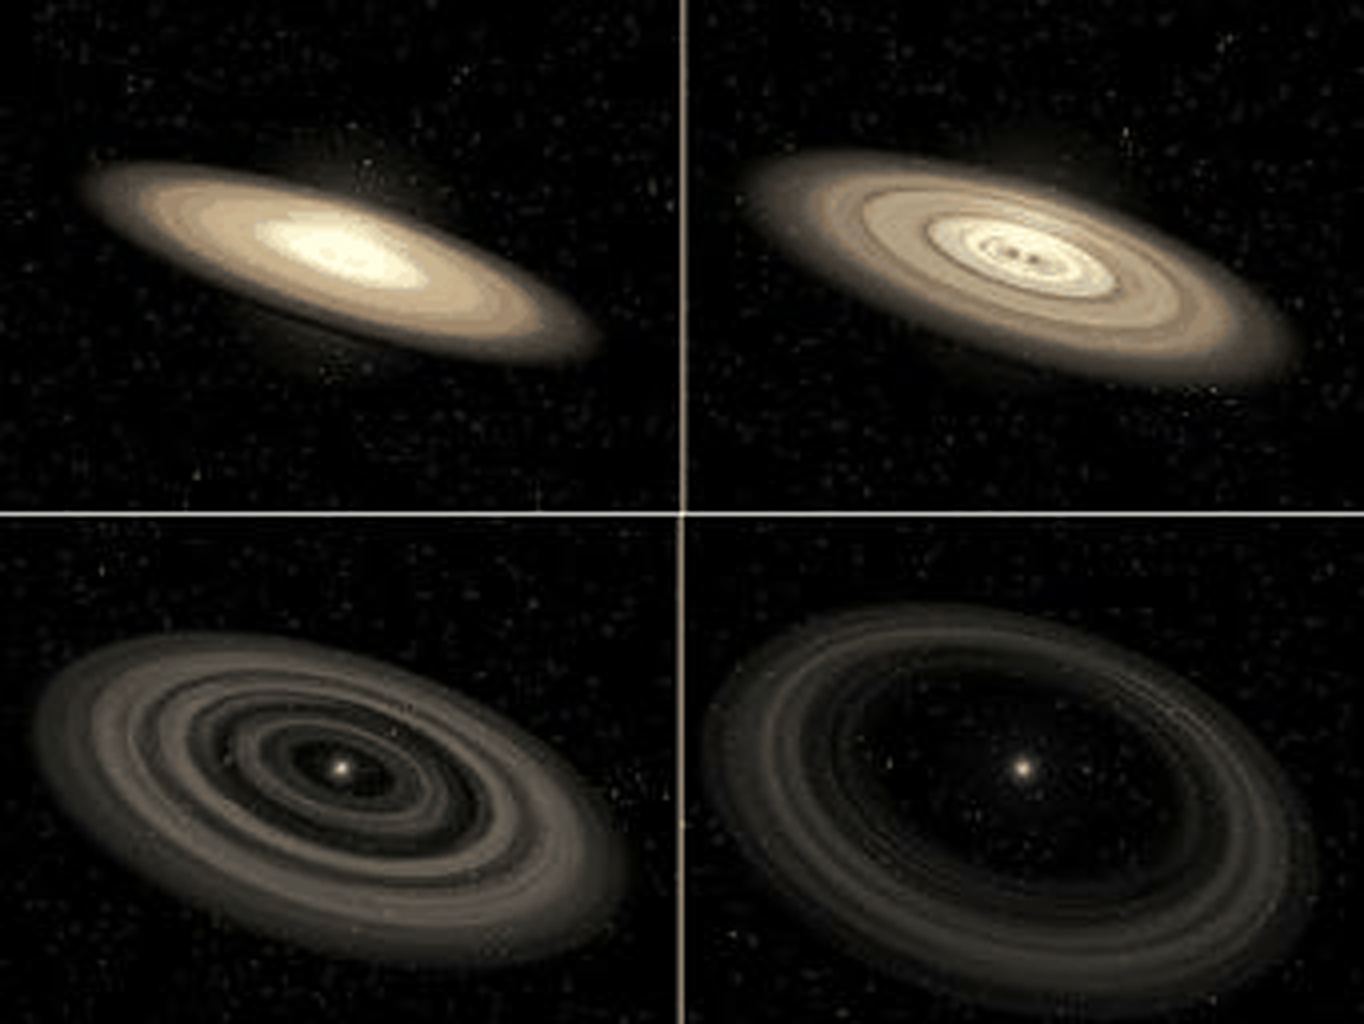 Bright, young disks can be imaged directly by visible-light telescopes, such as NASA's Hubble Space Telescope. Older, fainter debris disks can be detected only by infrared telescopes like NASA's Spitzer Space Telescope, which sense the disks' dim heat.